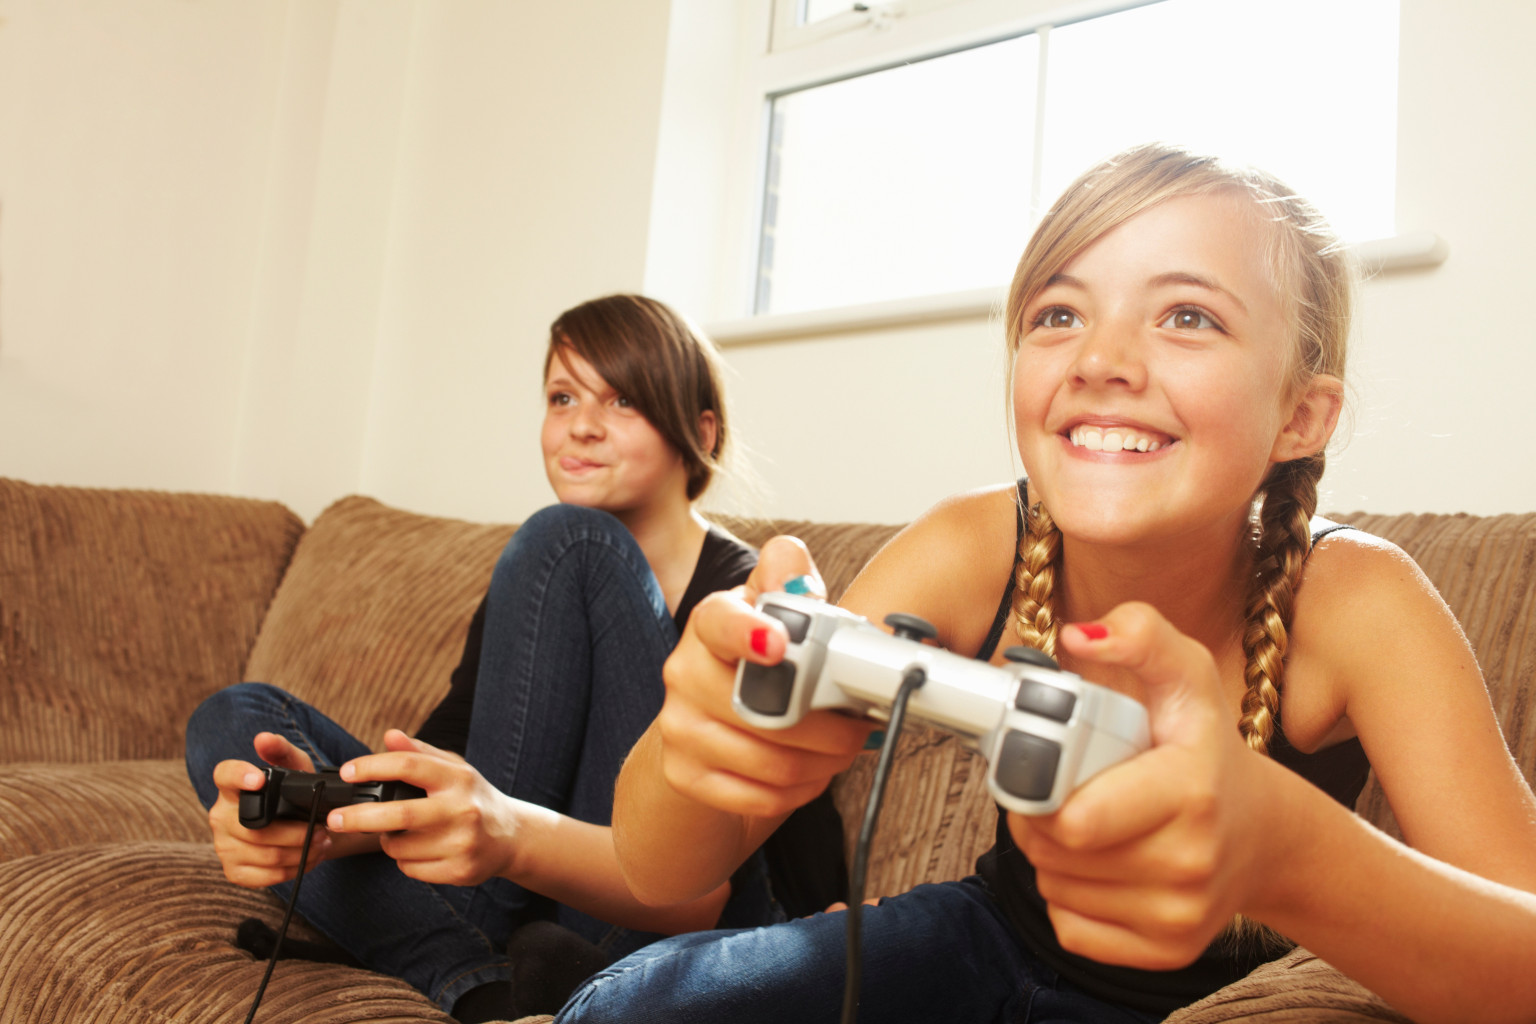 how long should a 11 year old play video games